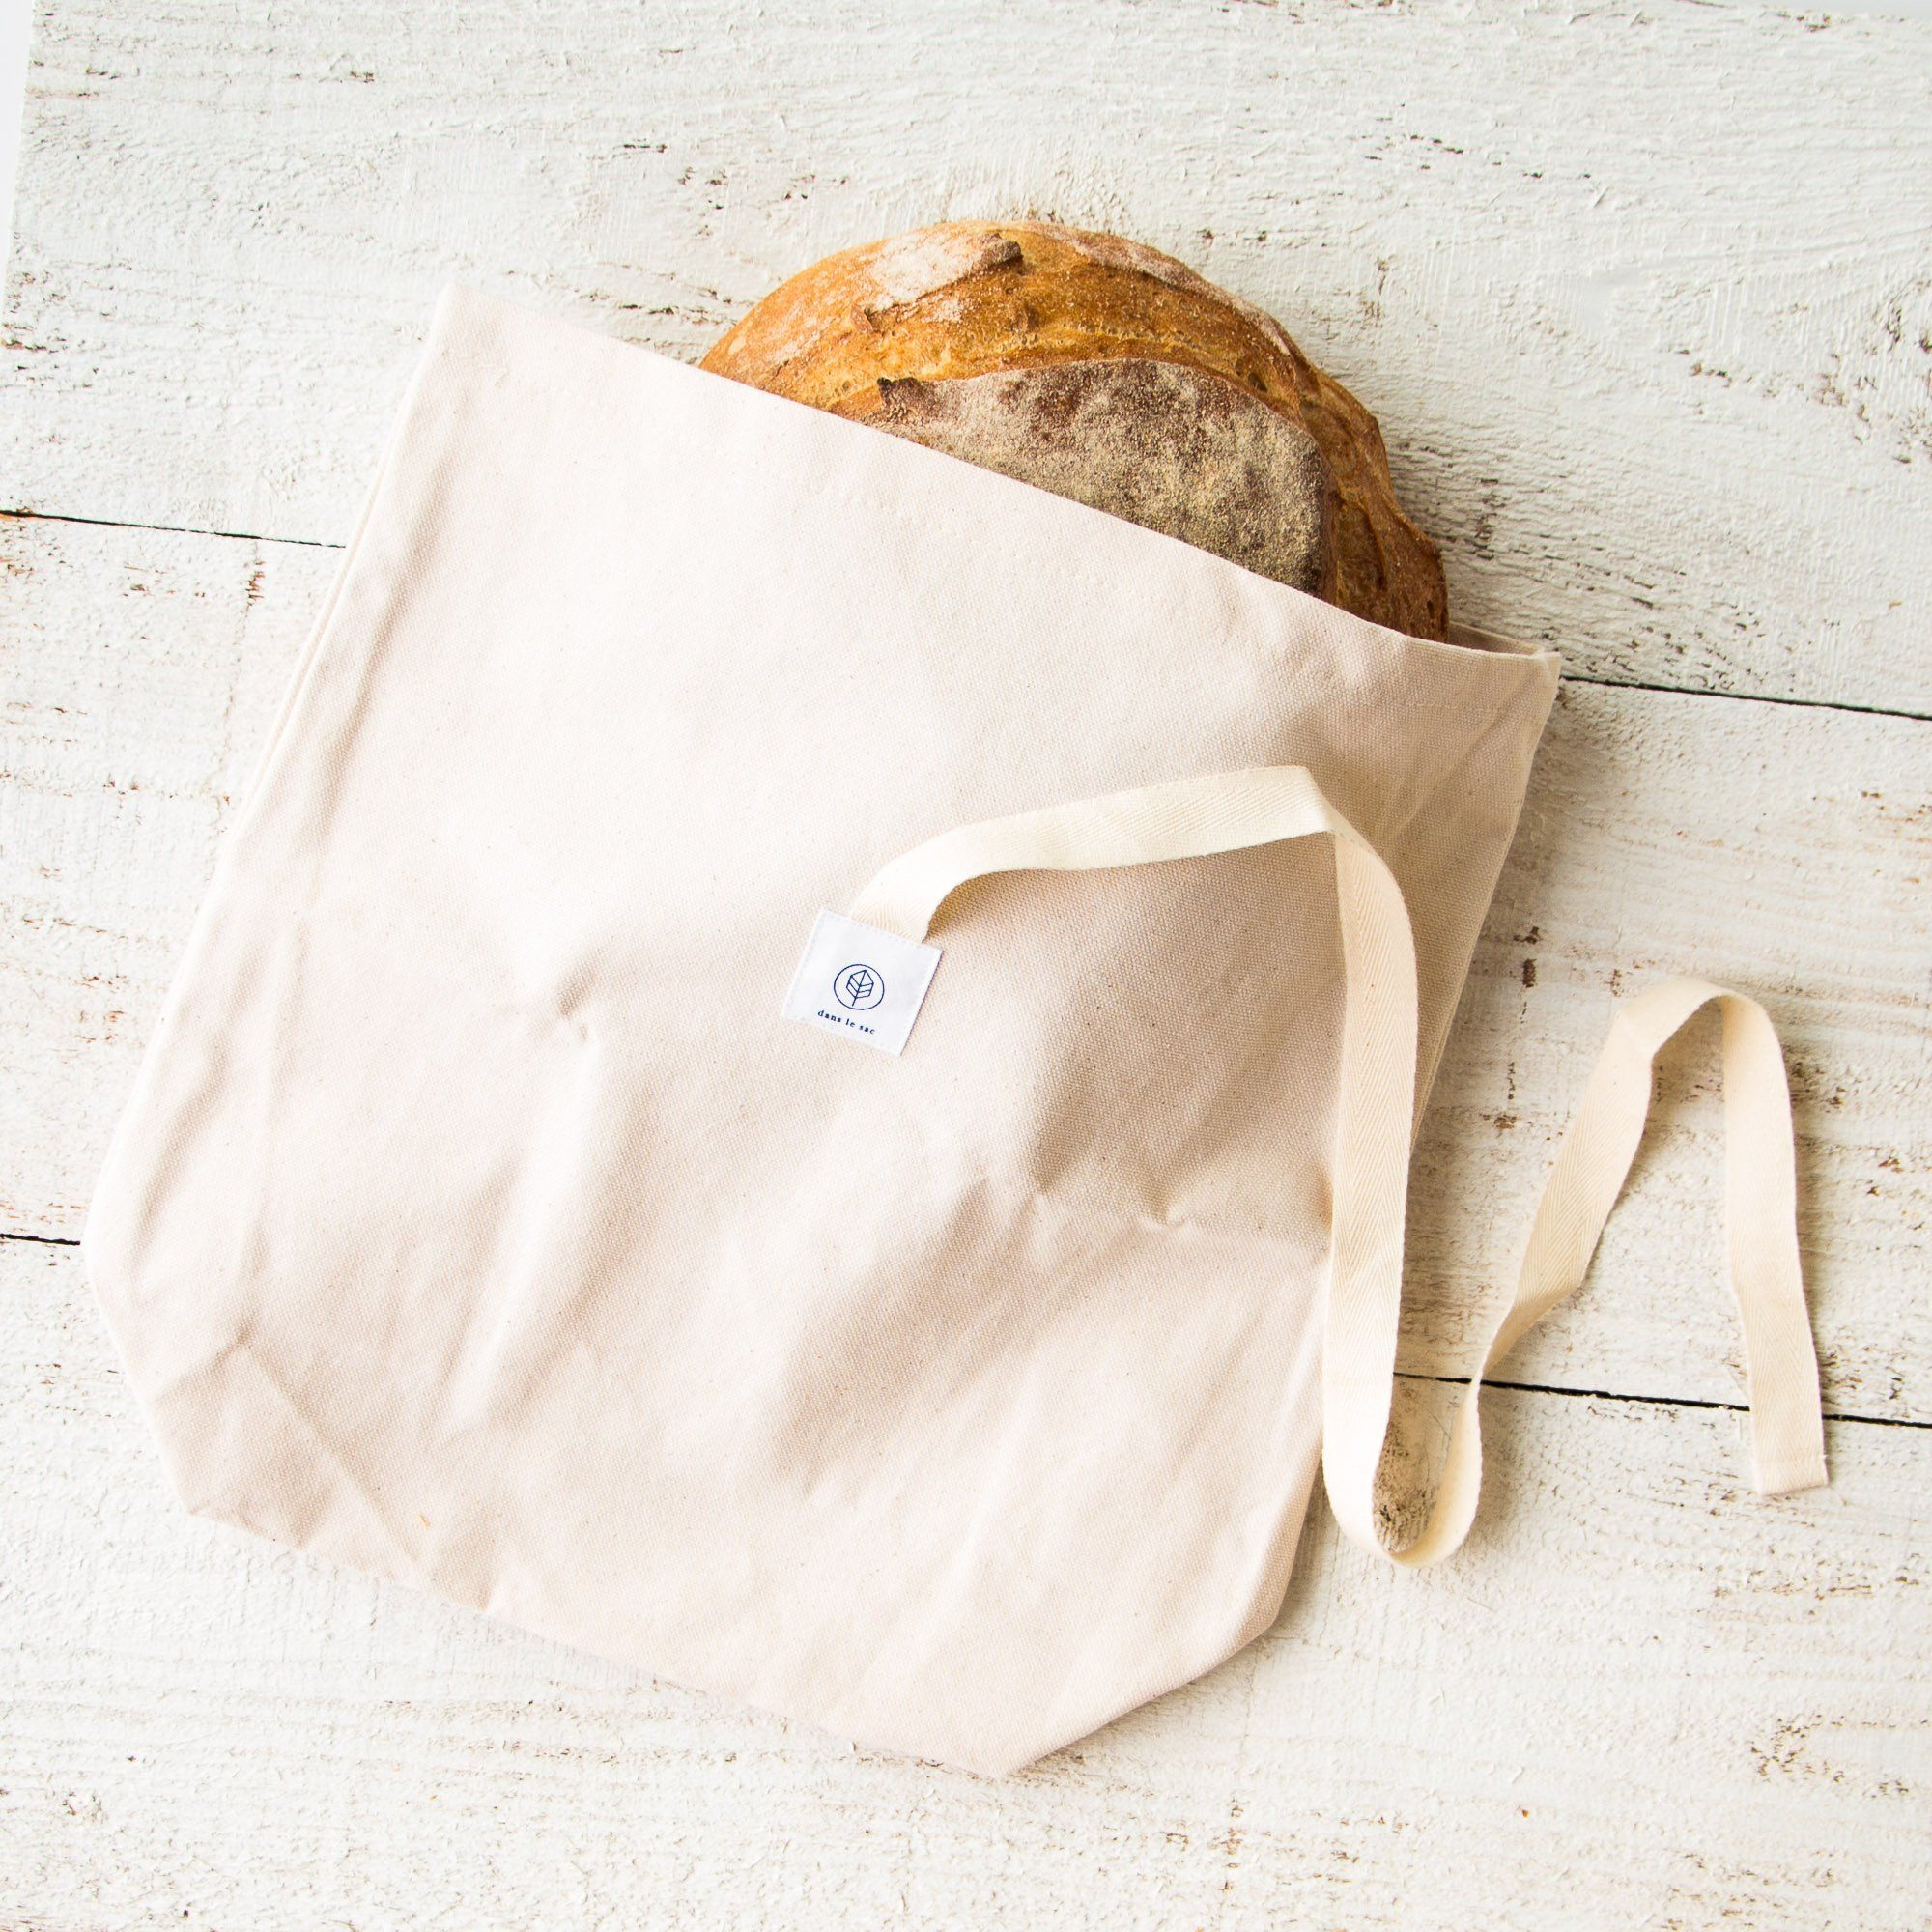 Reusable Bread Bag 100 Cotton Produce Bulk